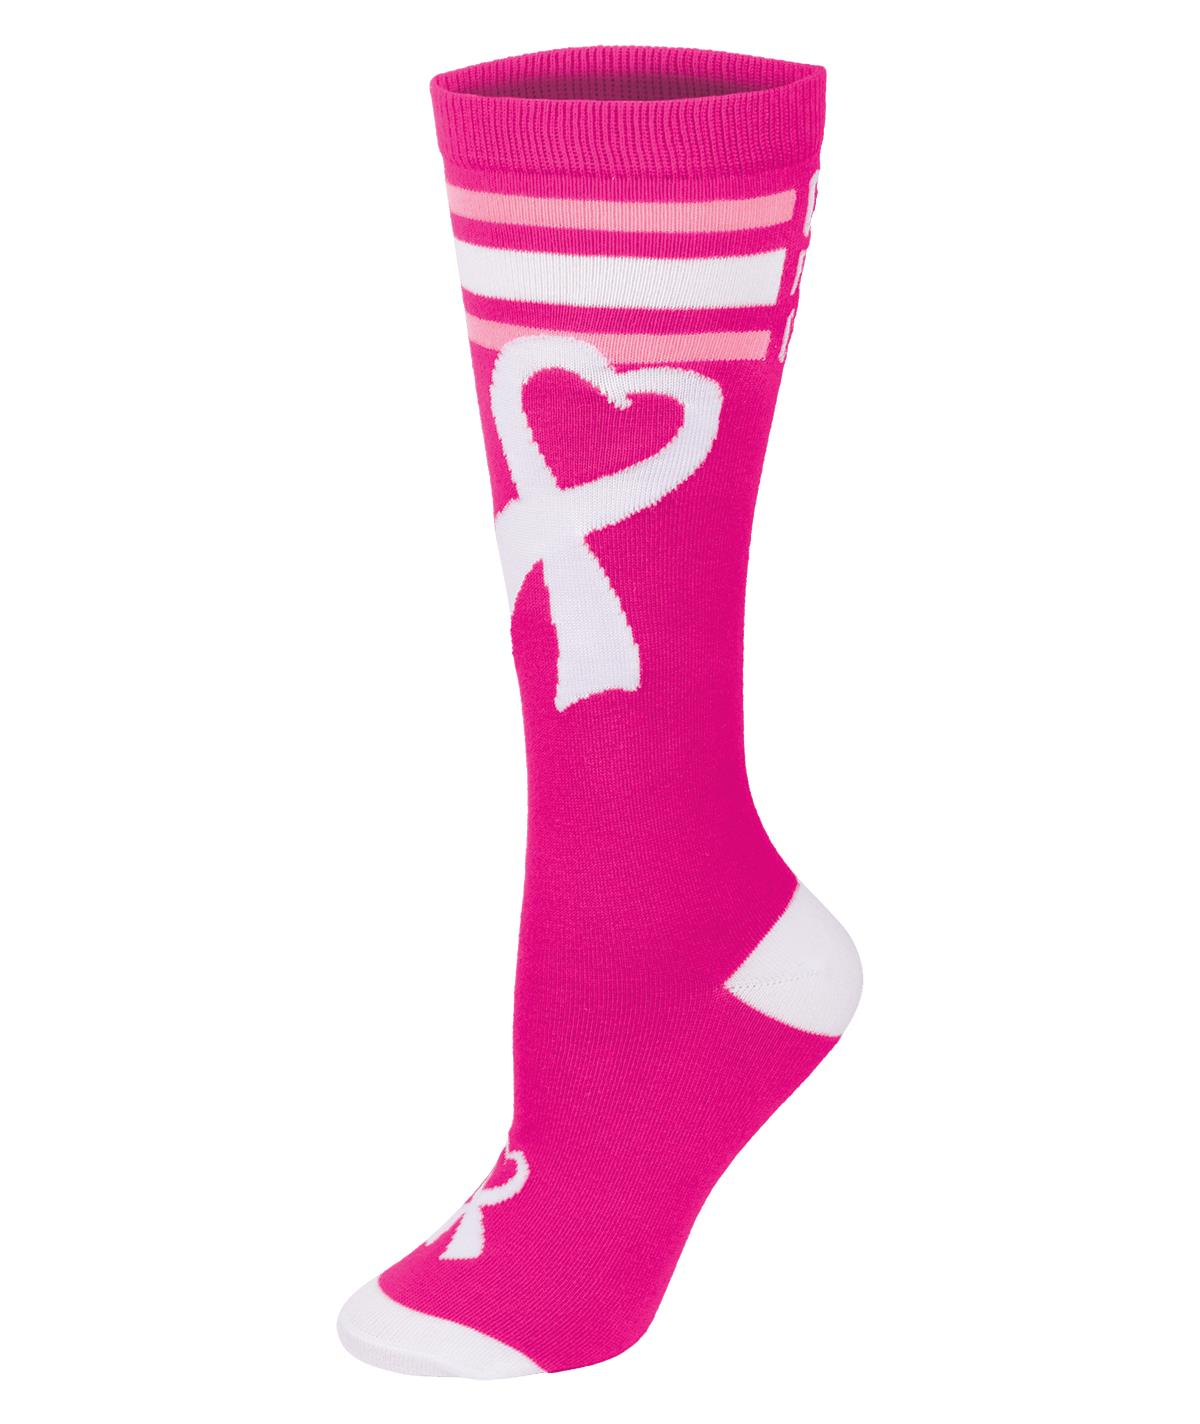 Chassé Cheer for the Cause Ribbon Knee-High Sock